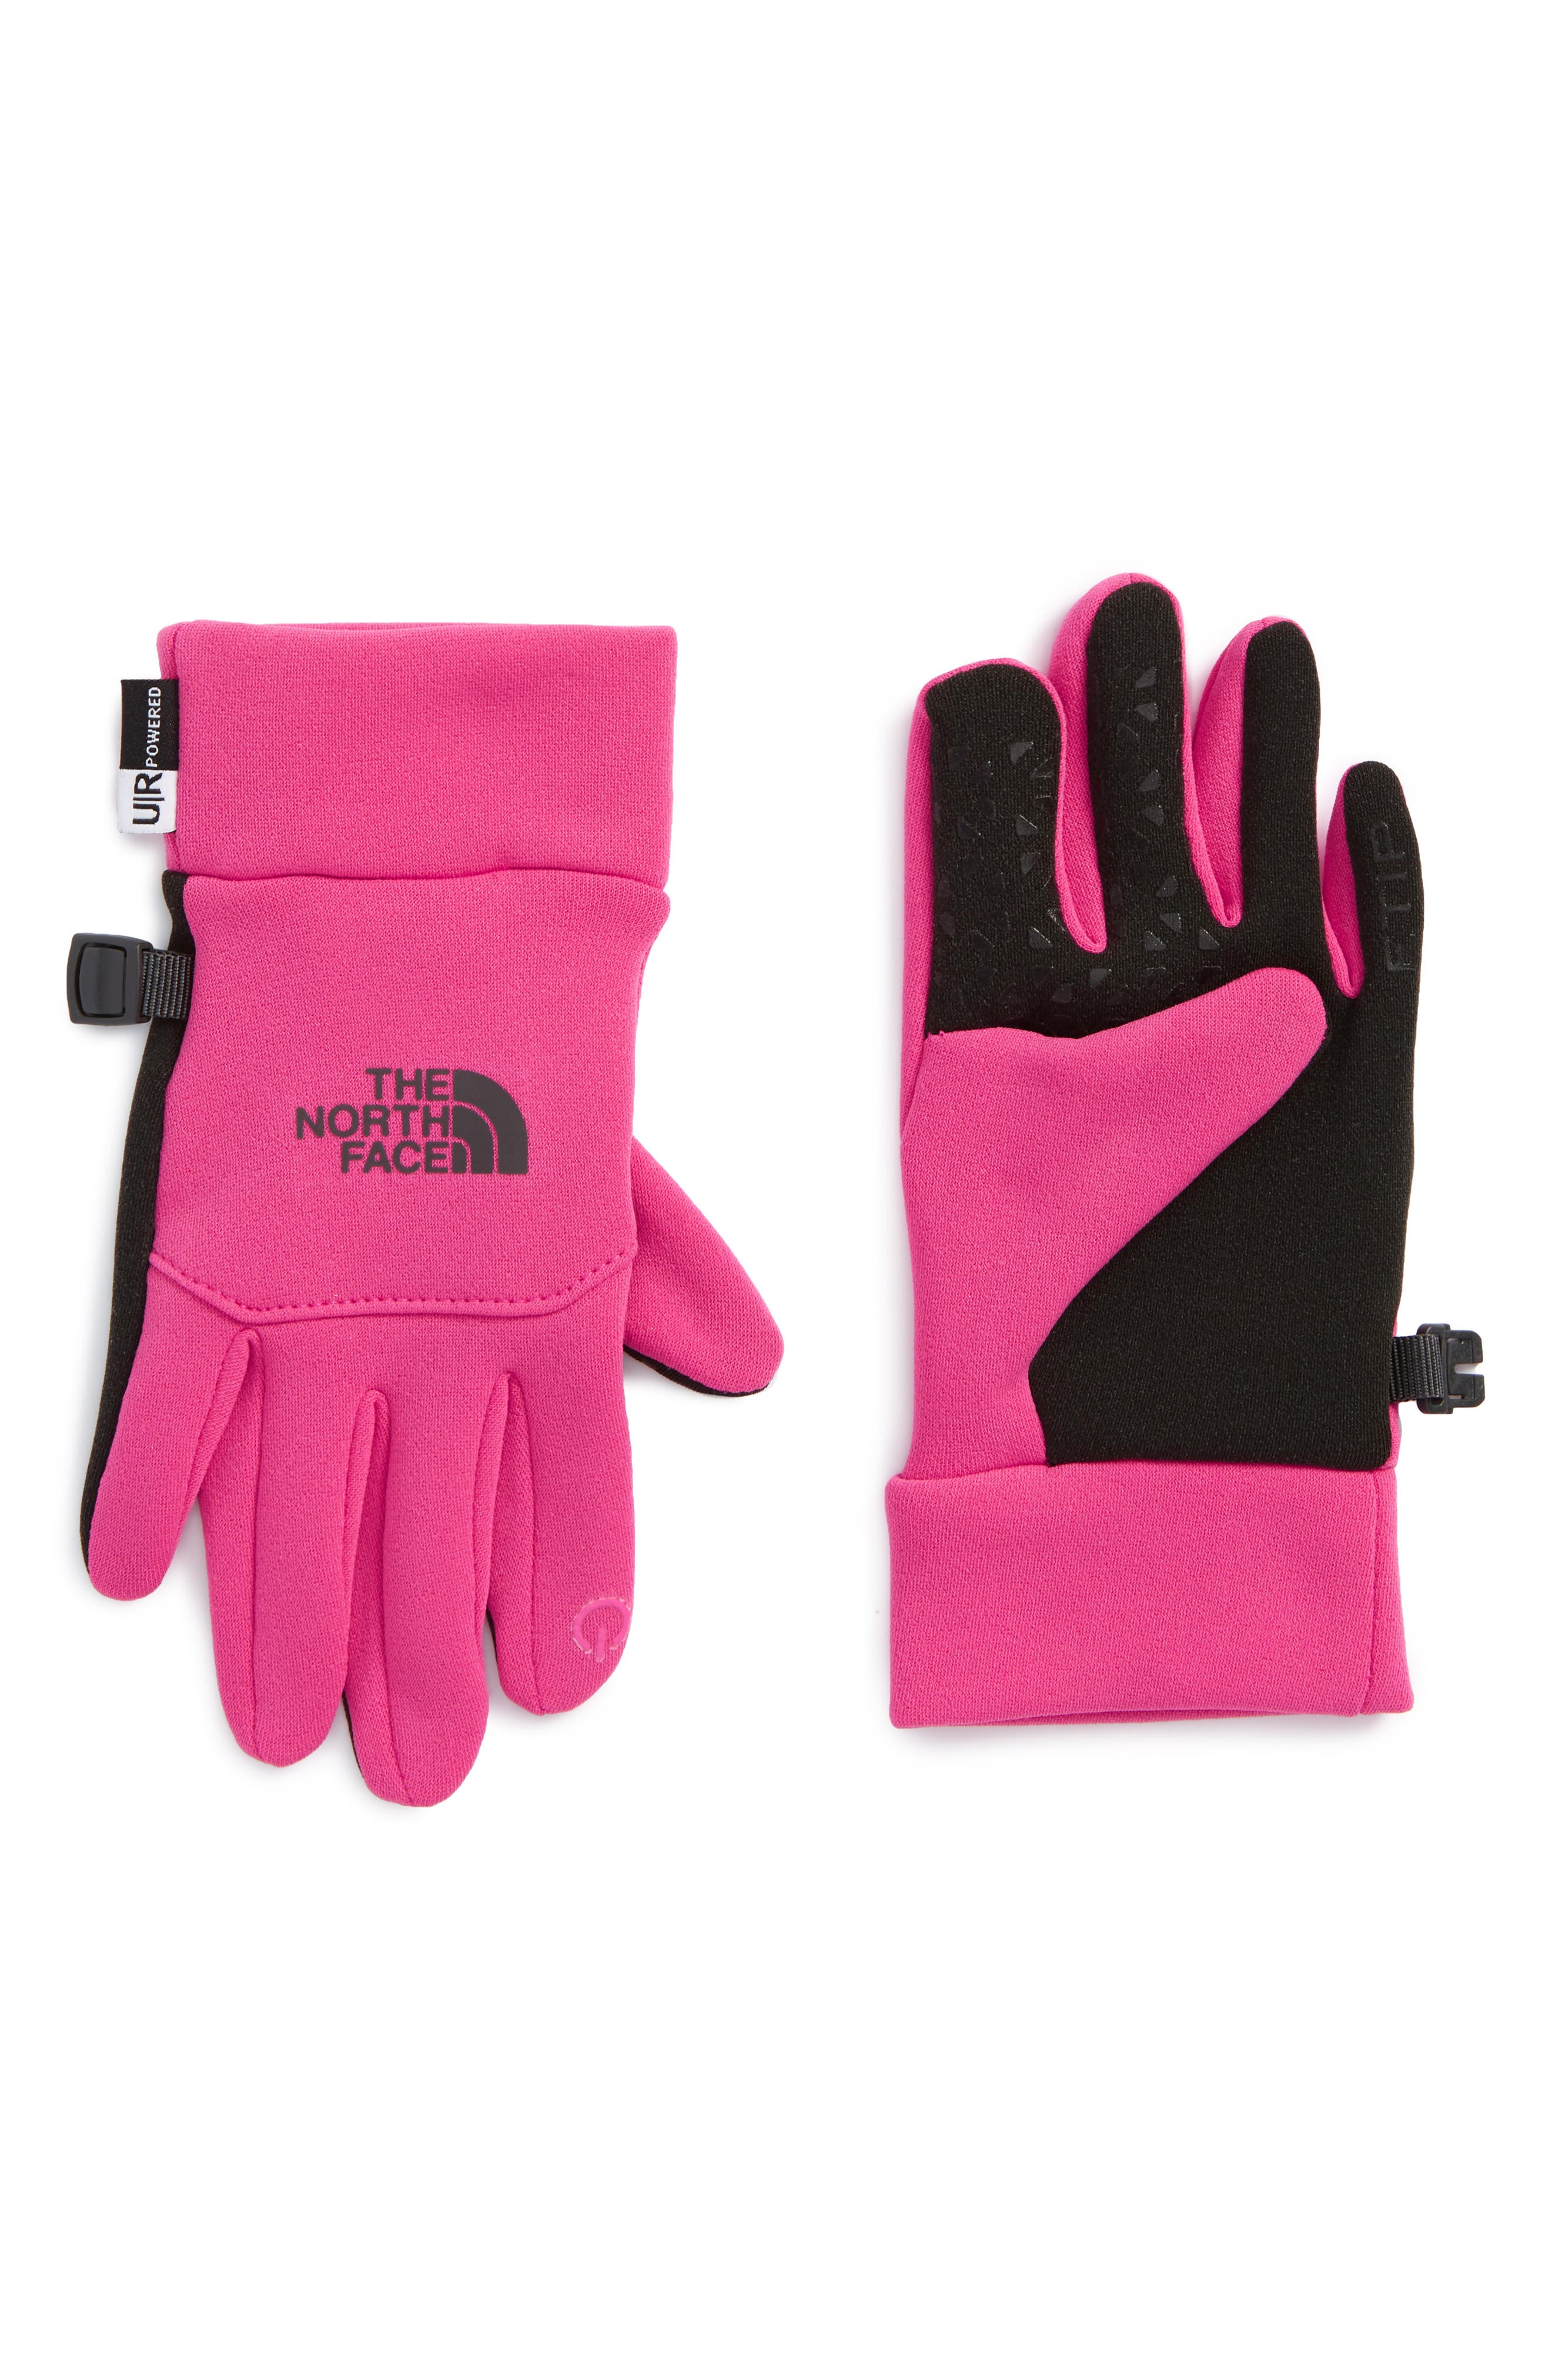 E-Tip Gloves,                         Main,                         color, Petticoat Pink